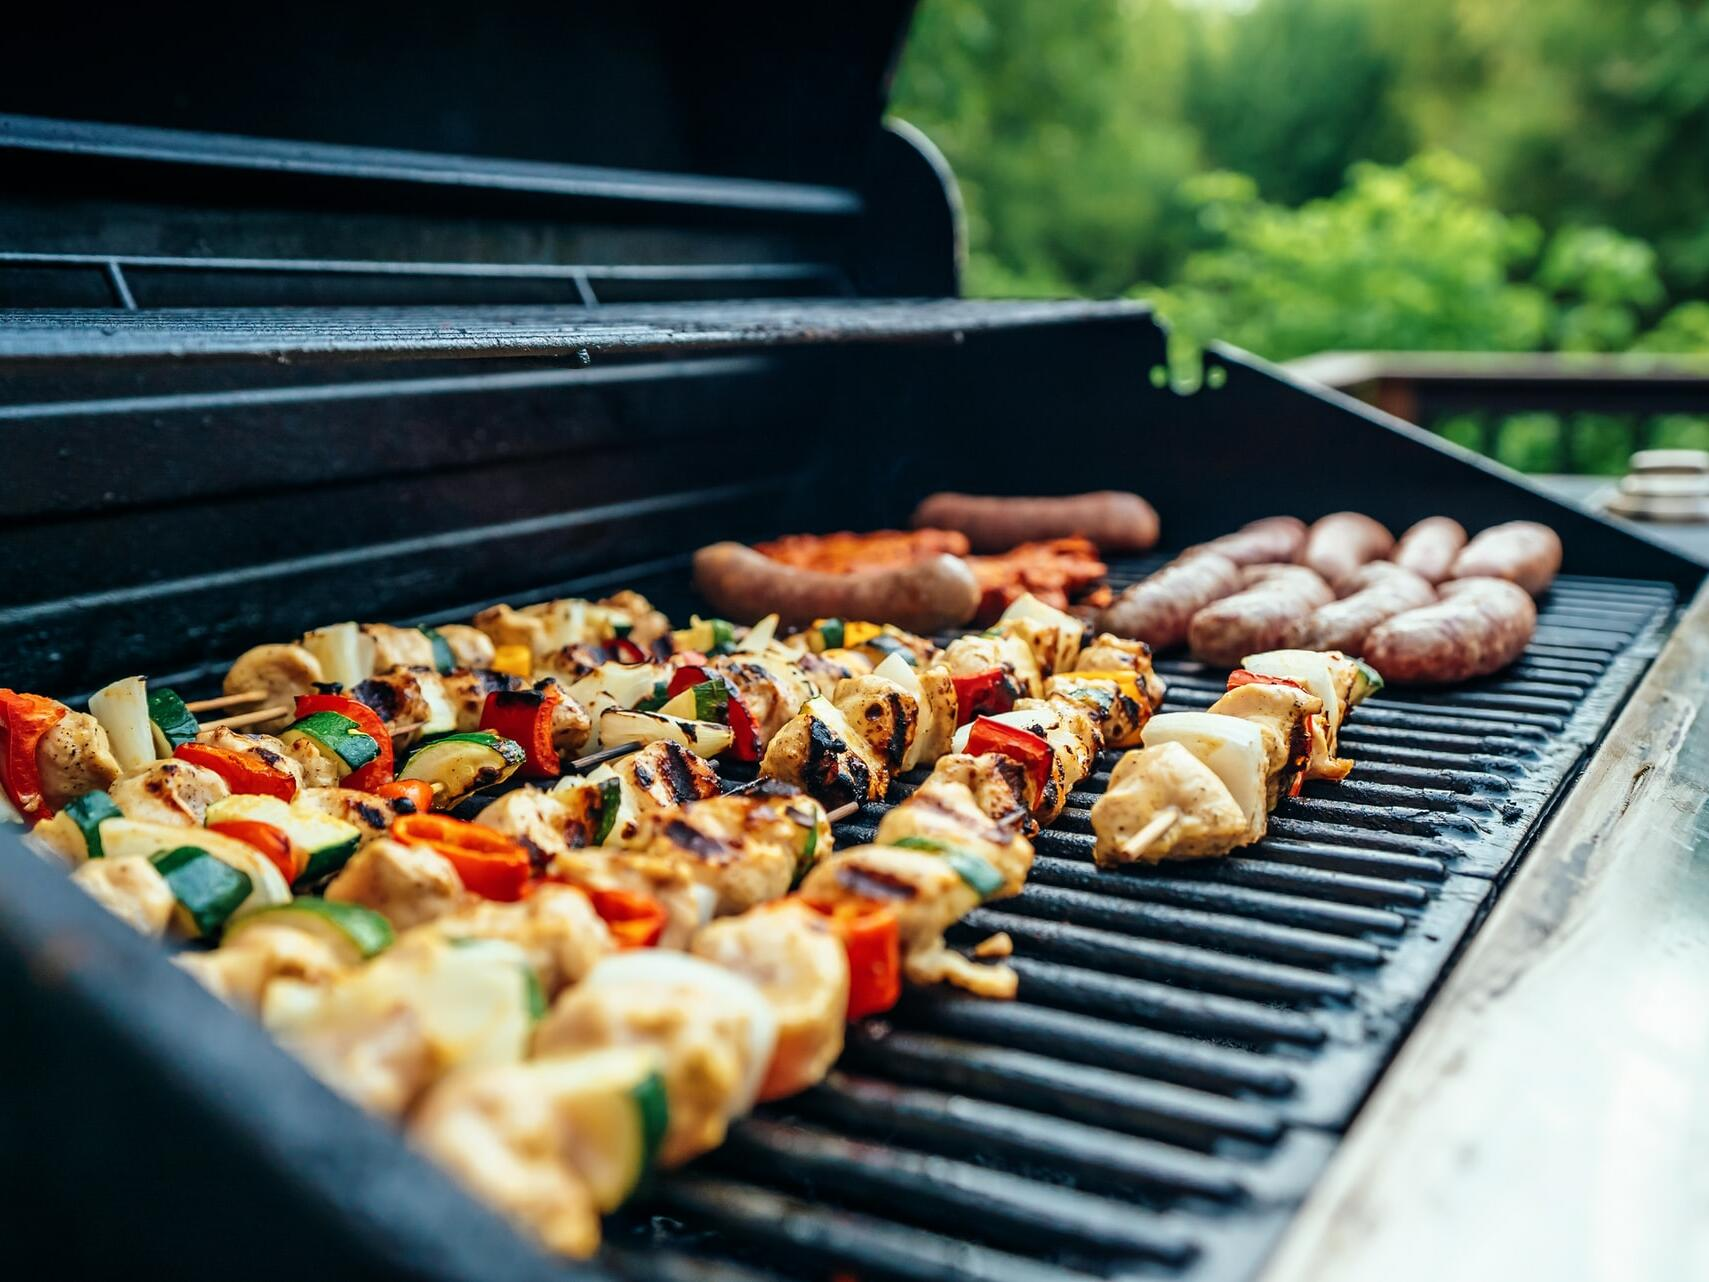 A barbeque grill with meat kebabs, vegetable kebabs and sausages